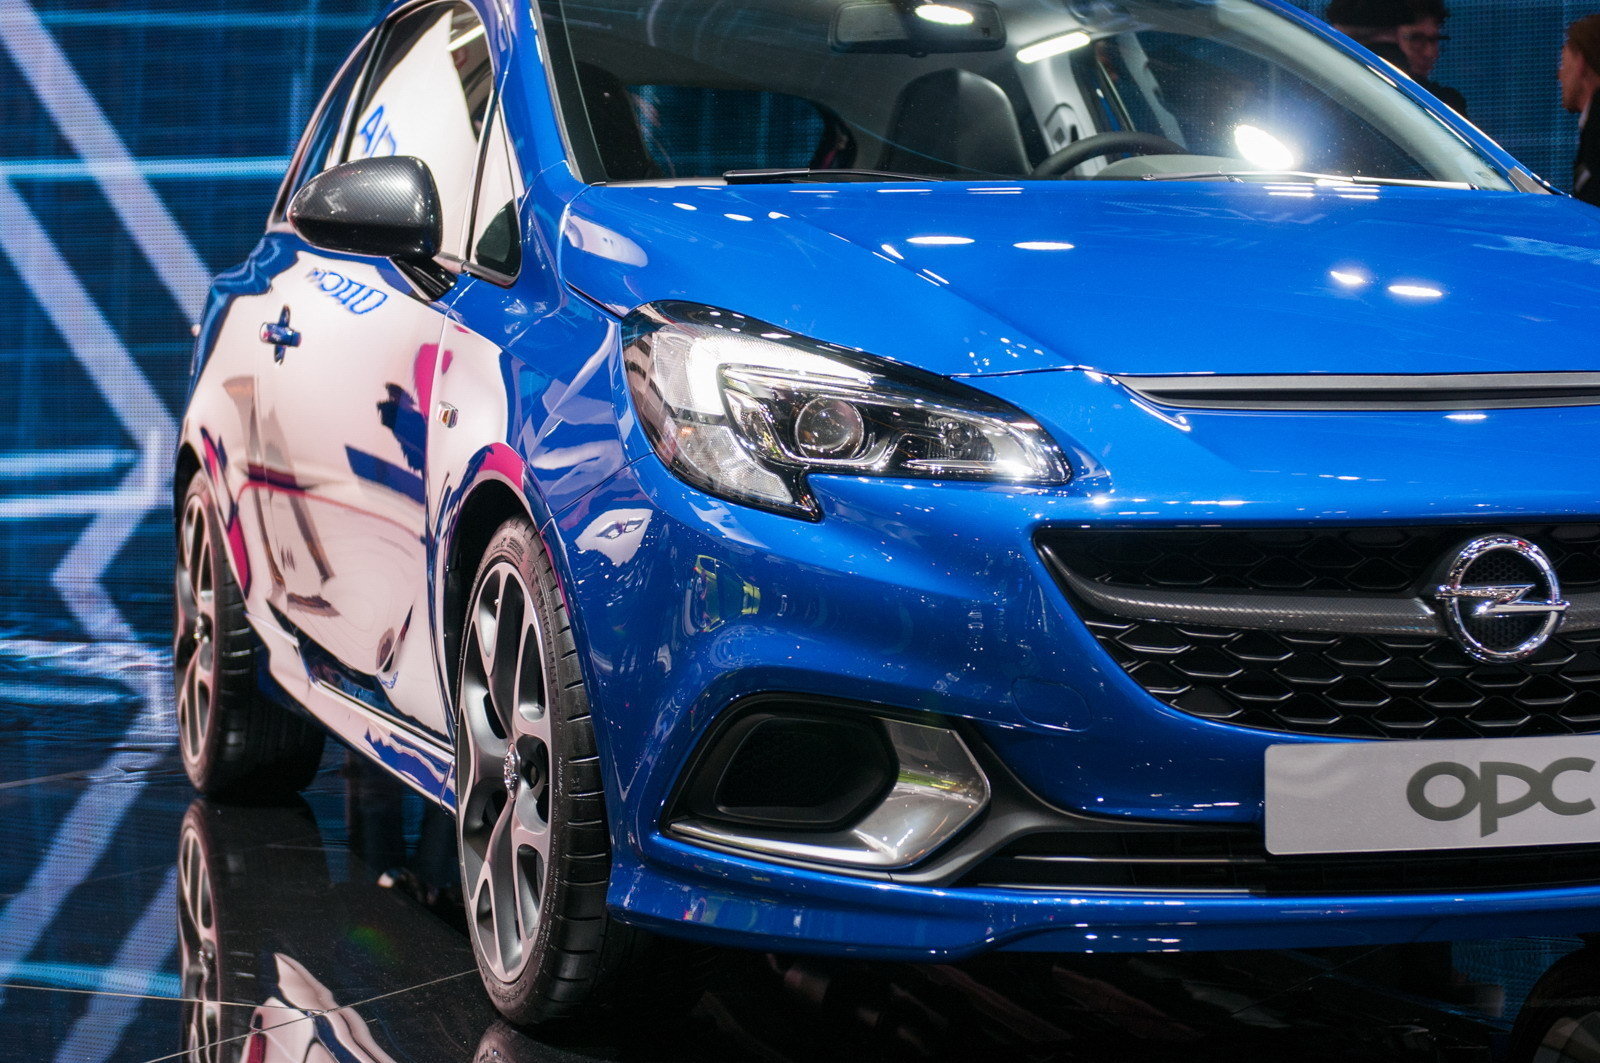 2015 opel corsa opc picture 622641 car review top speed. Black Bedroom Furniture Sets. Home Design Ideas